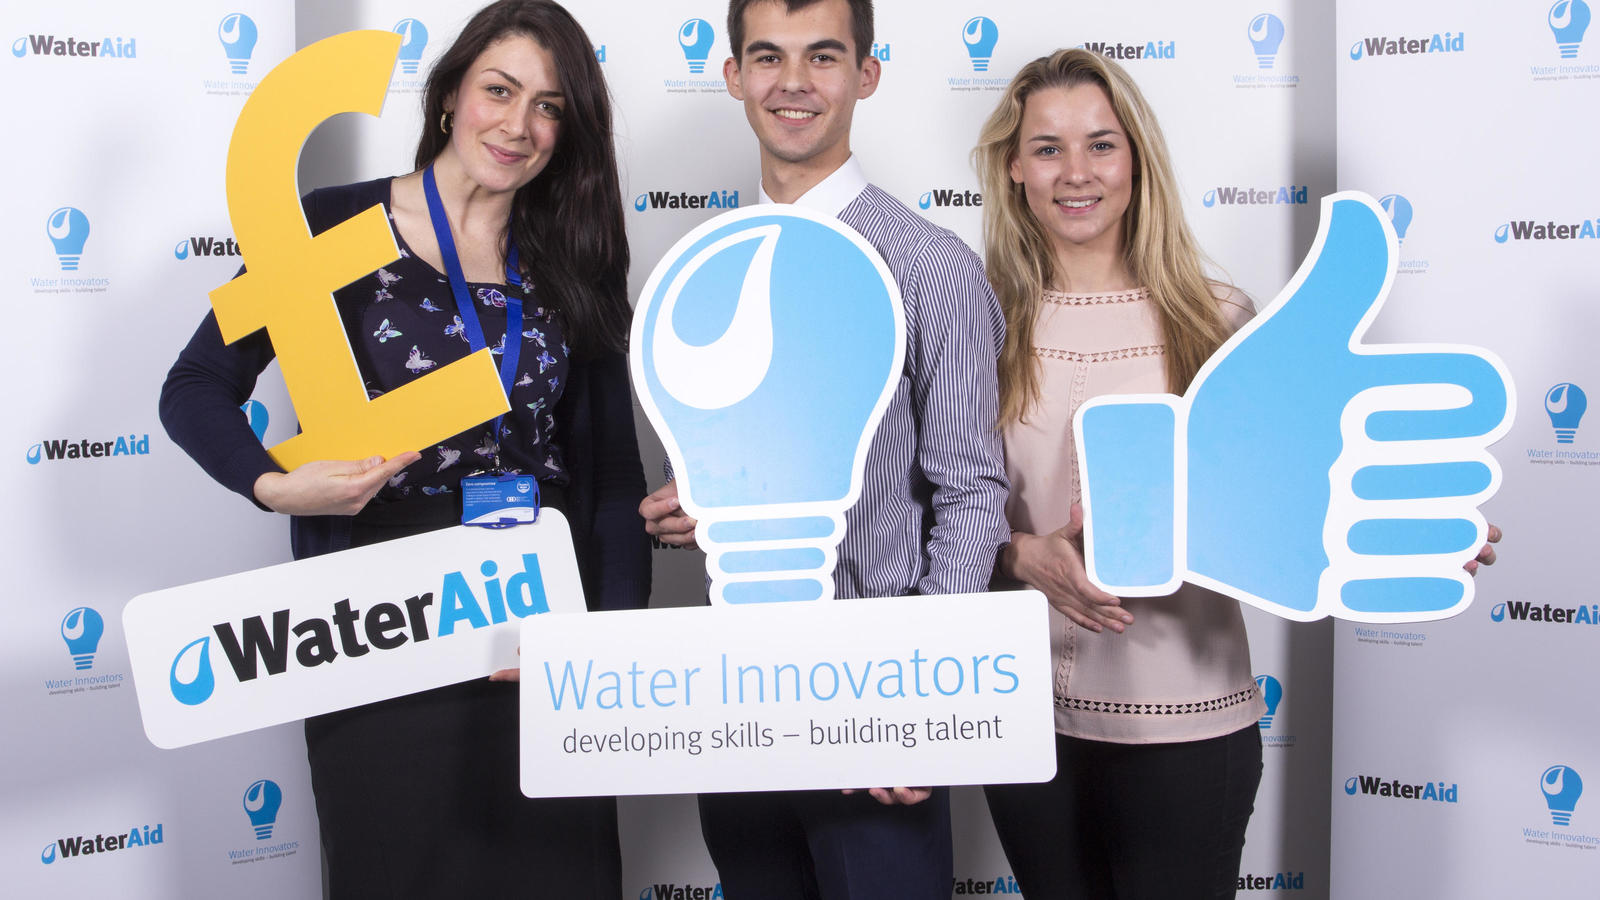 Thames Water Ninja Turtles Winnovators participants